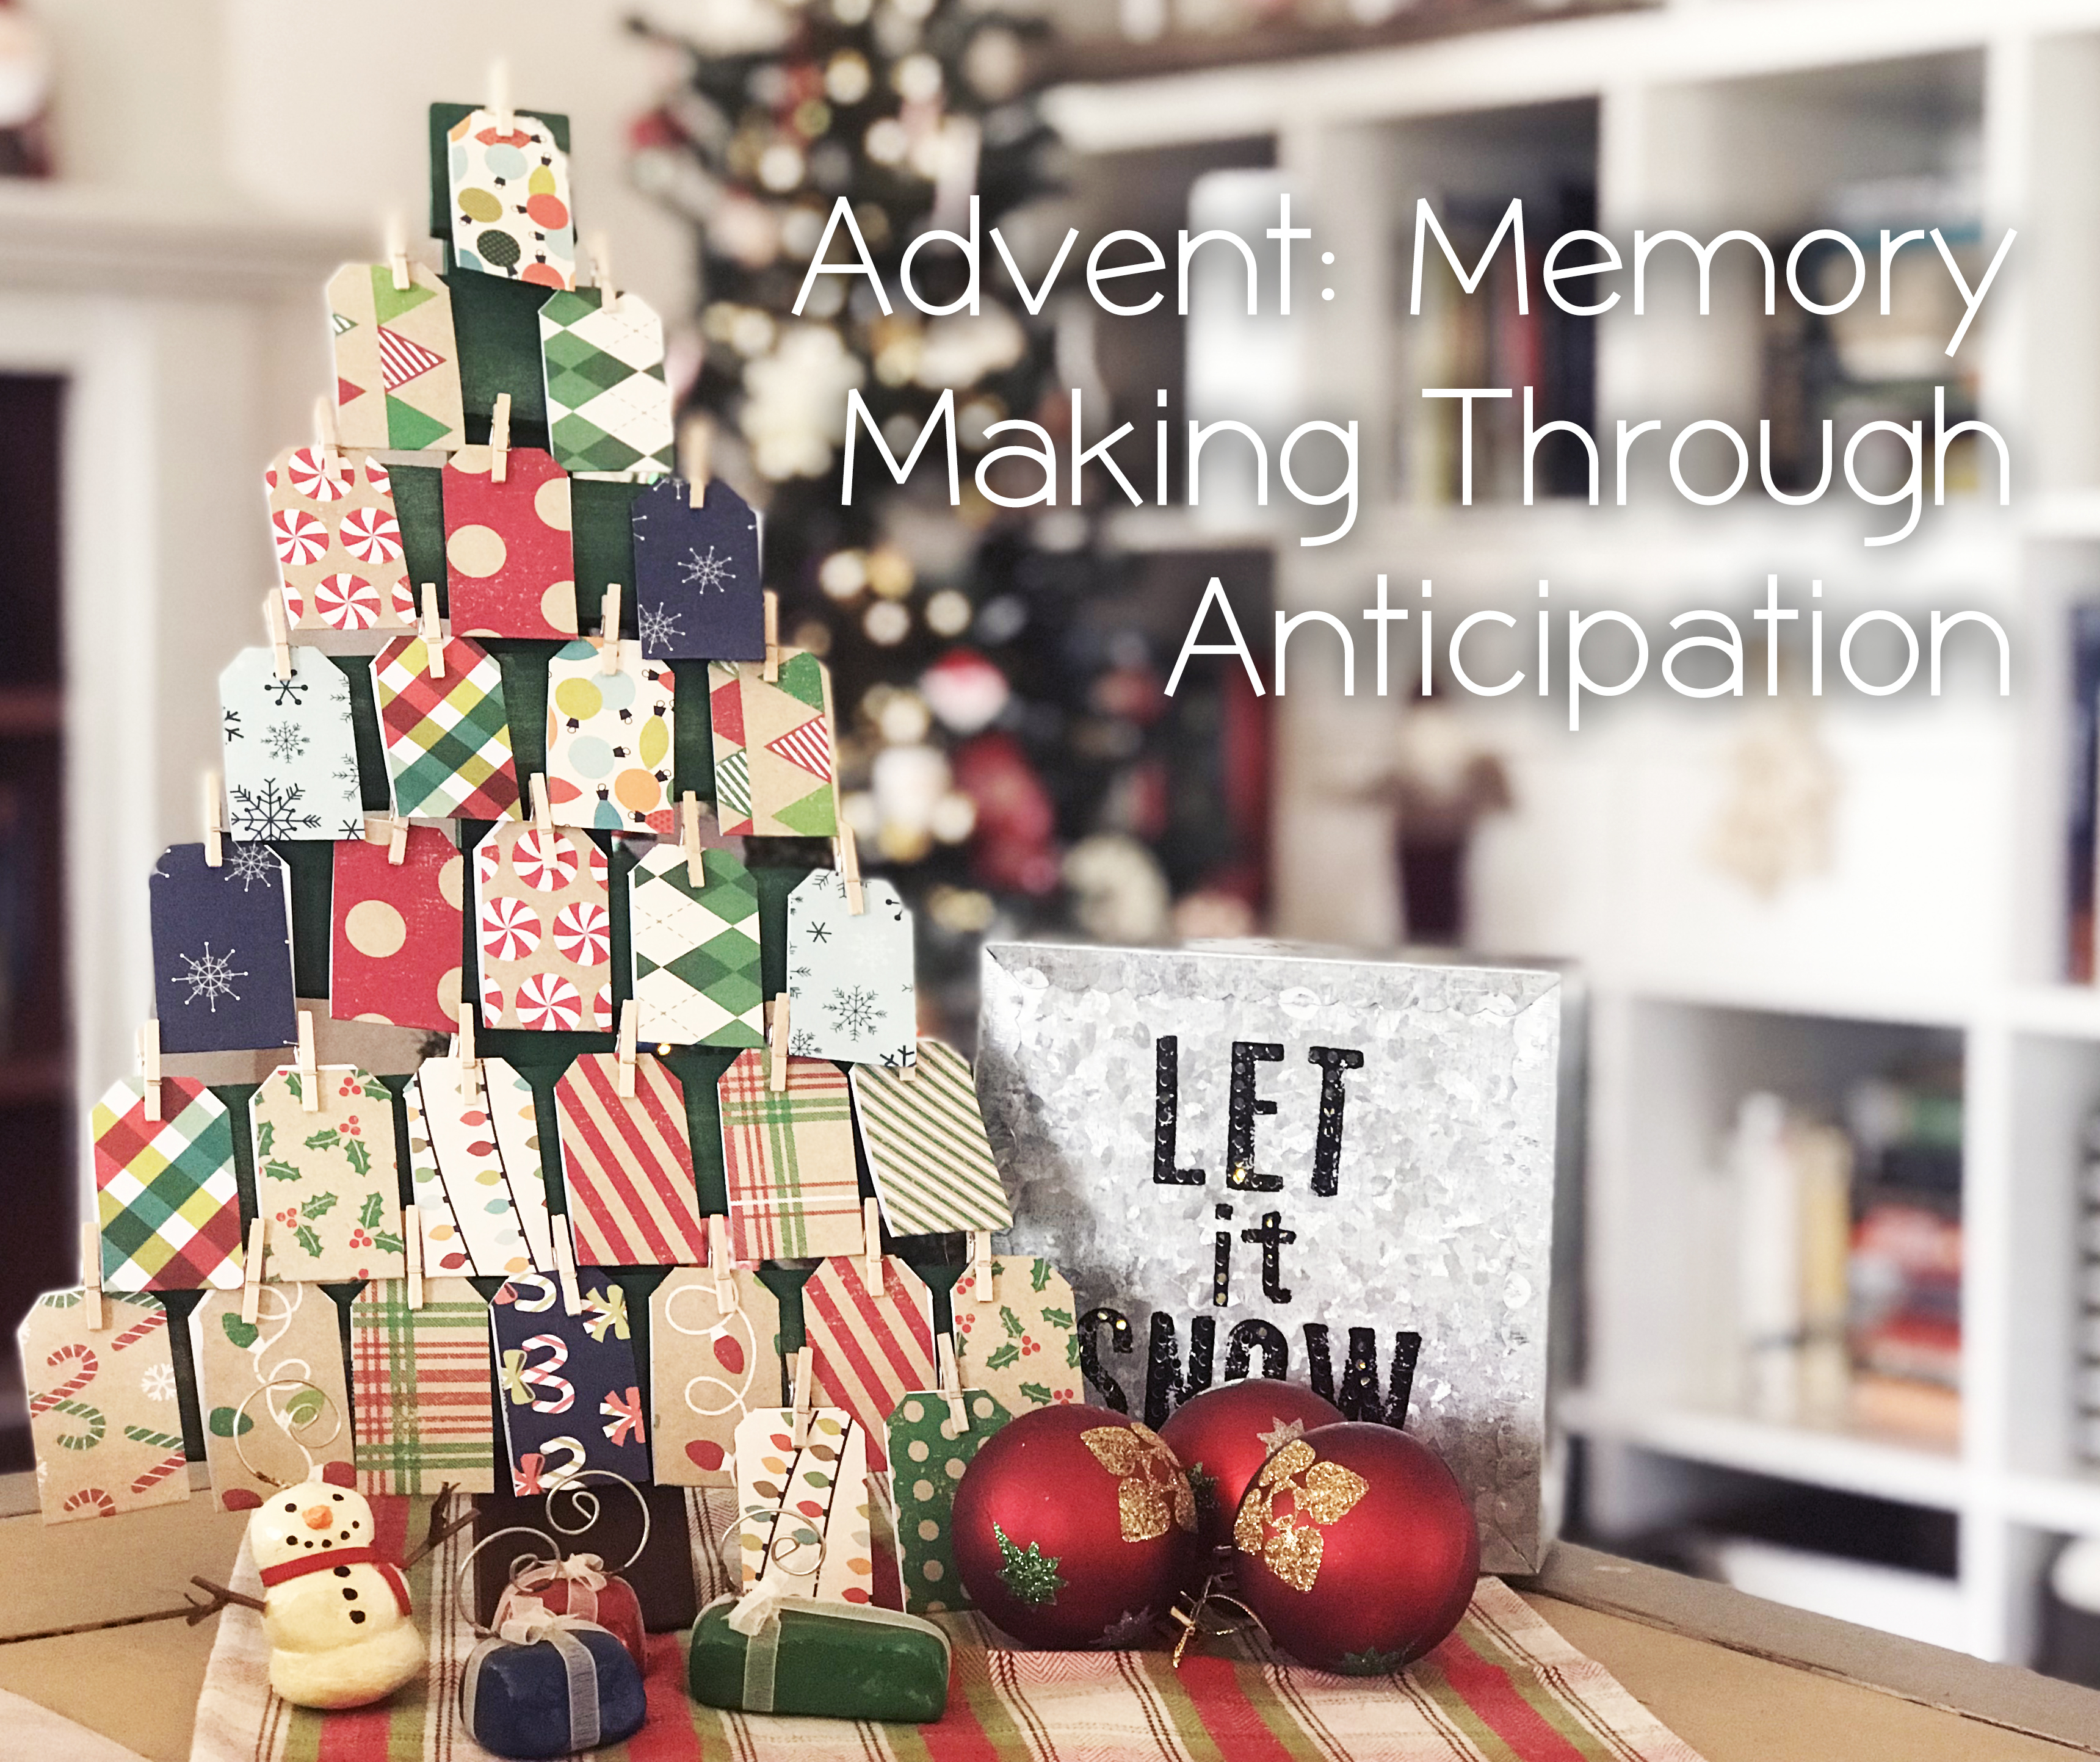 Advent: Memory Making Through Anticipation